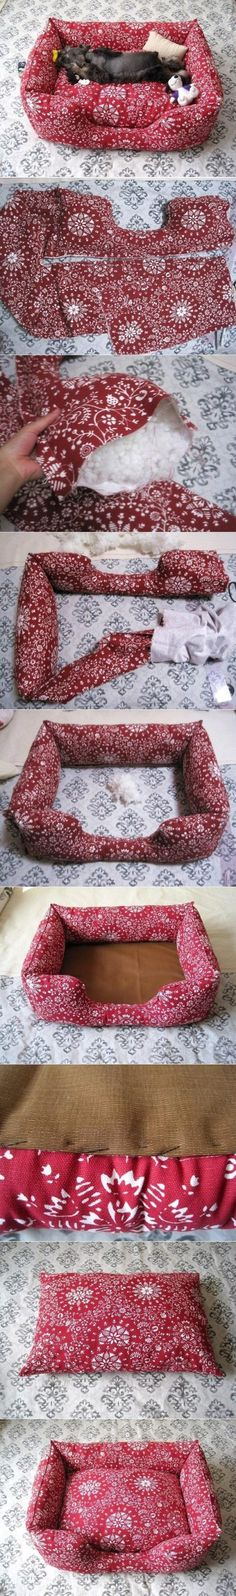 DIY Pet Pillow Bed